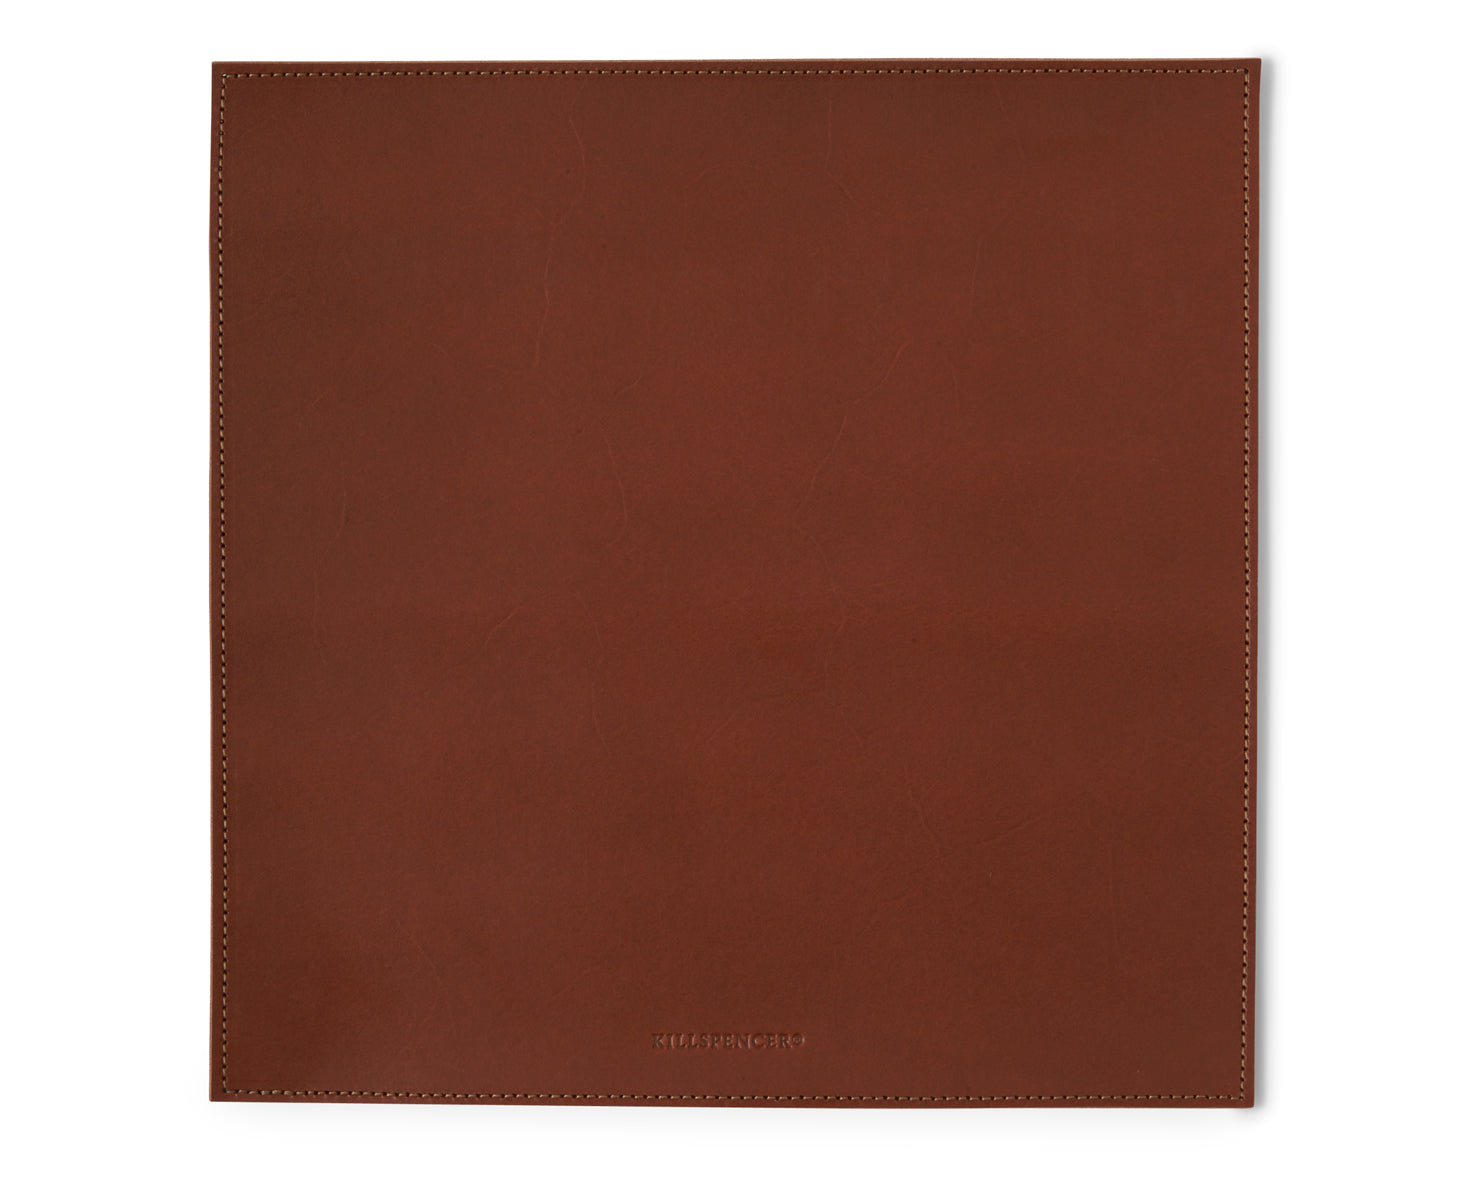 MOUSEPAD | KILLSPENCER® - Cognac Bullhide Leather